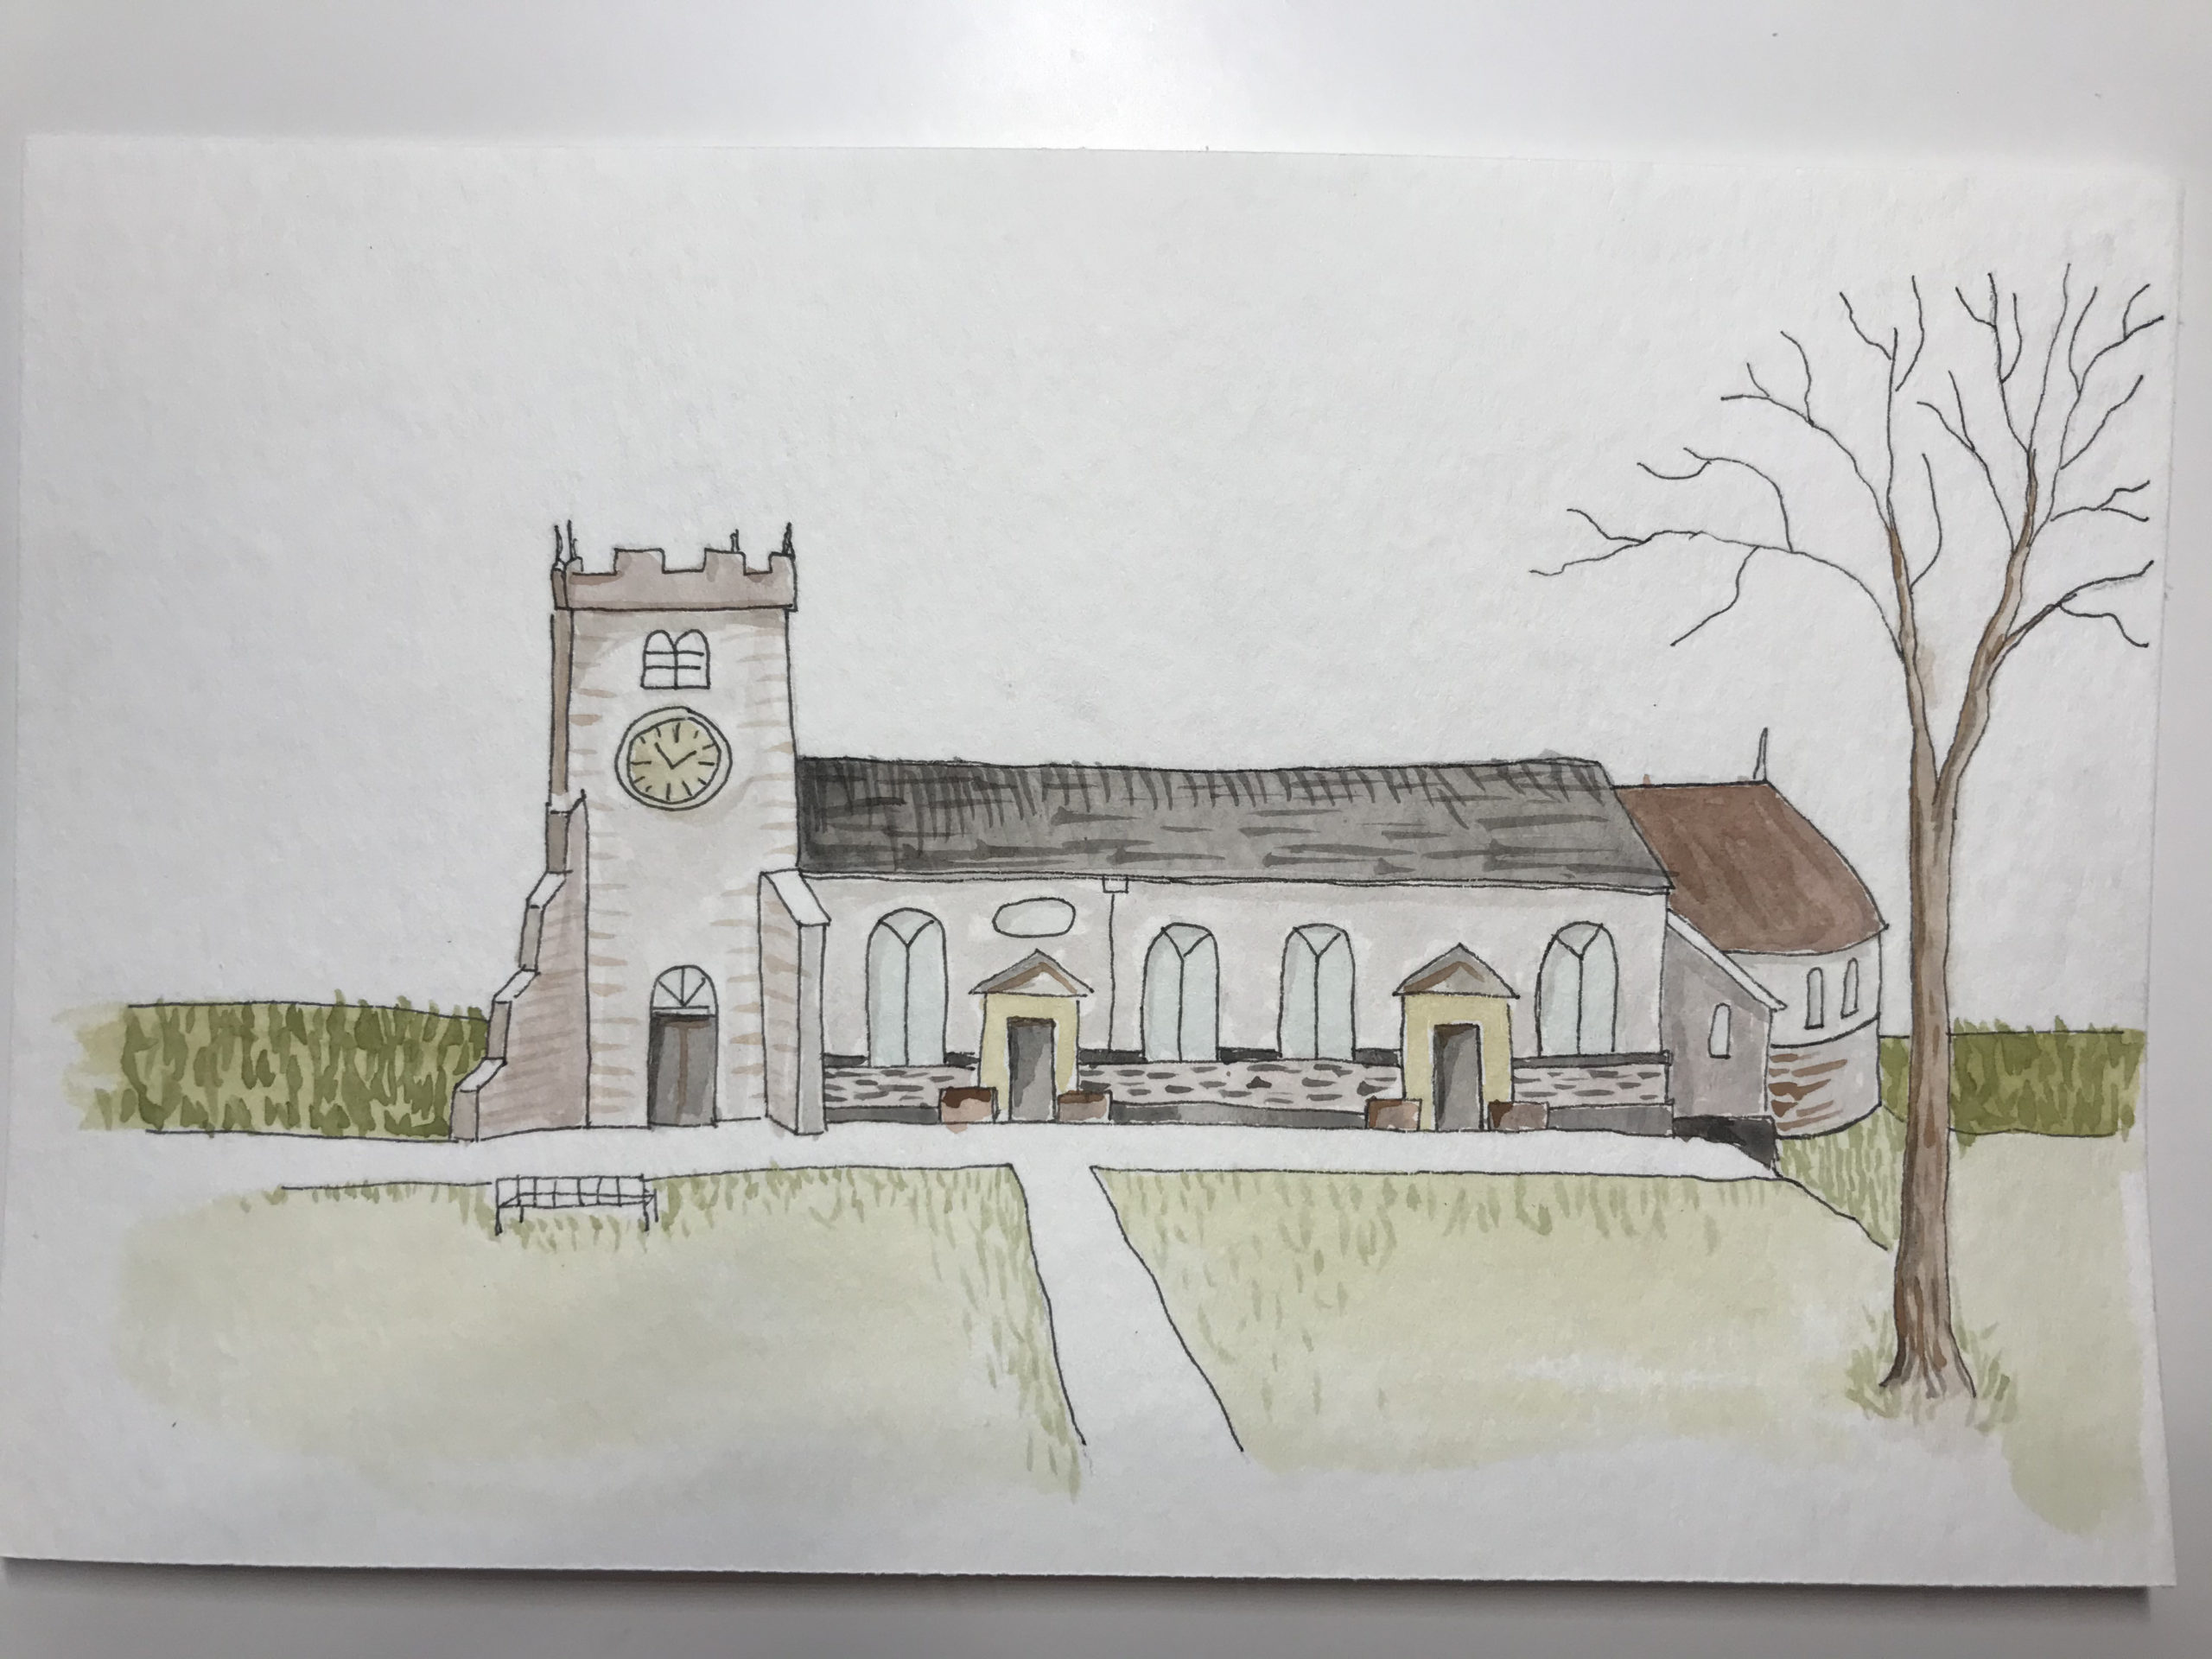 St Chad's Church Poulton-le-Fylde, Ink and Watercolor